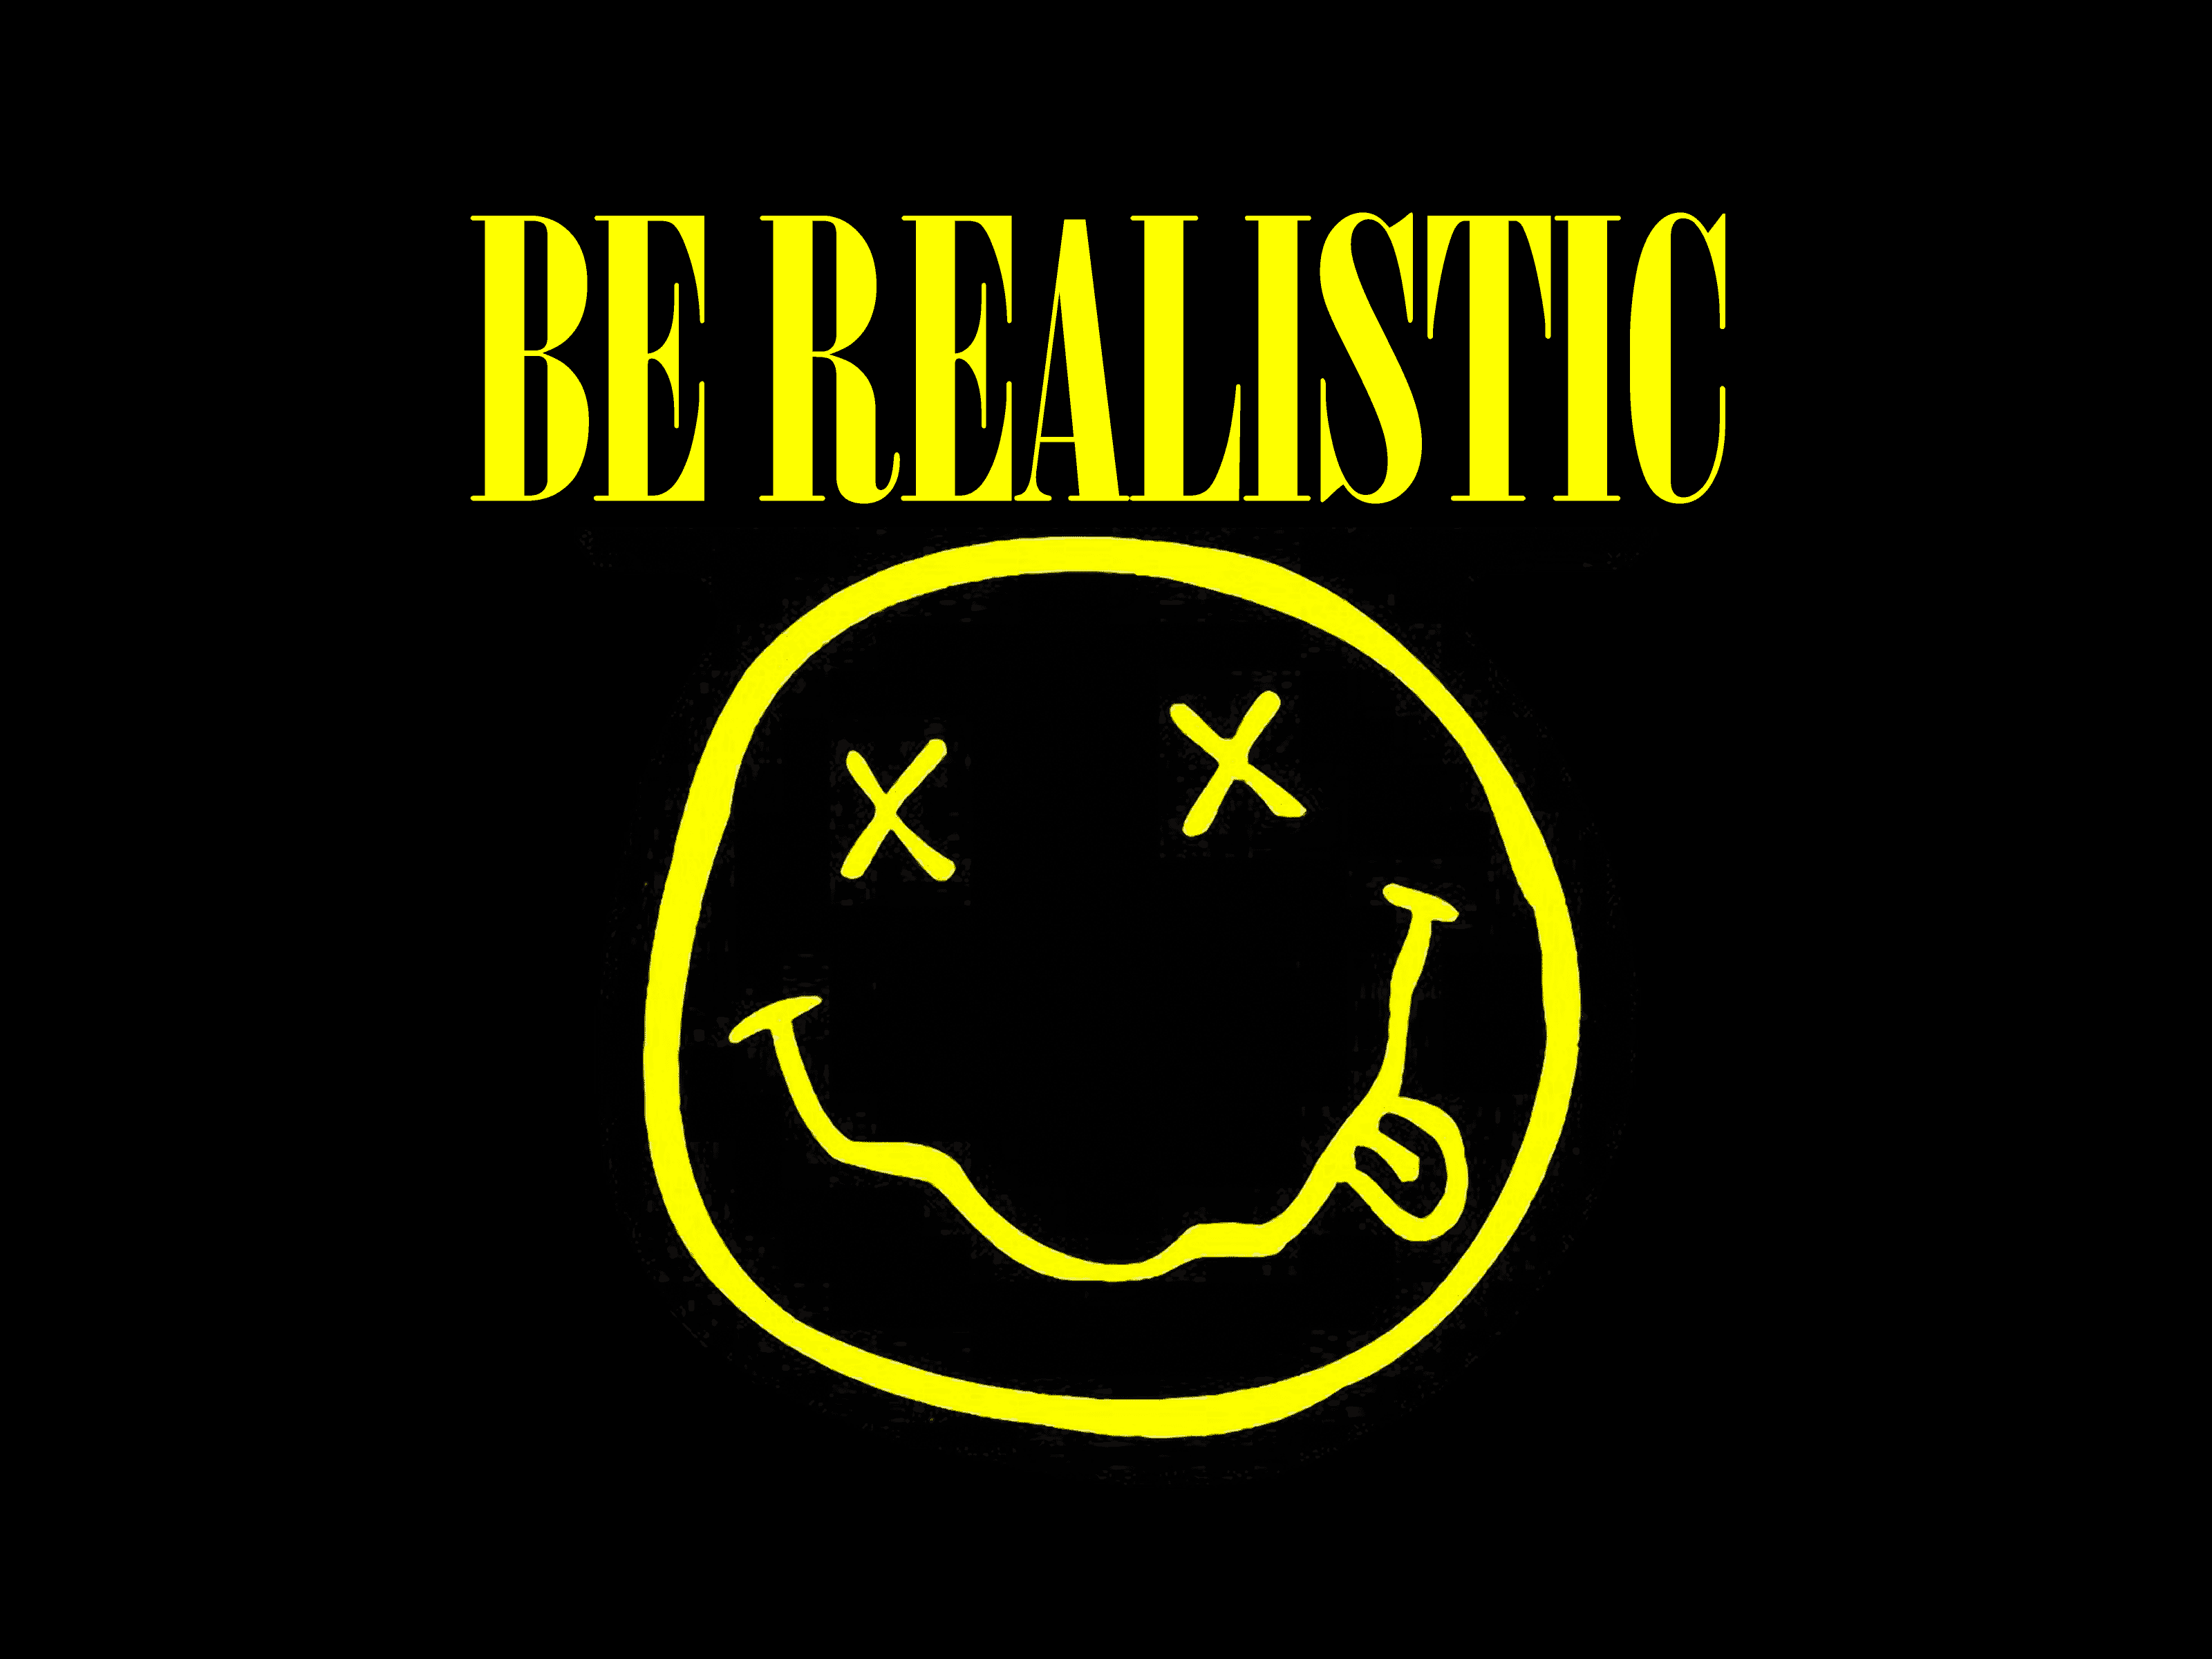 A riff on grunge band Nirvana's logo; the band's name is replaced by the words 'Be Realistic'